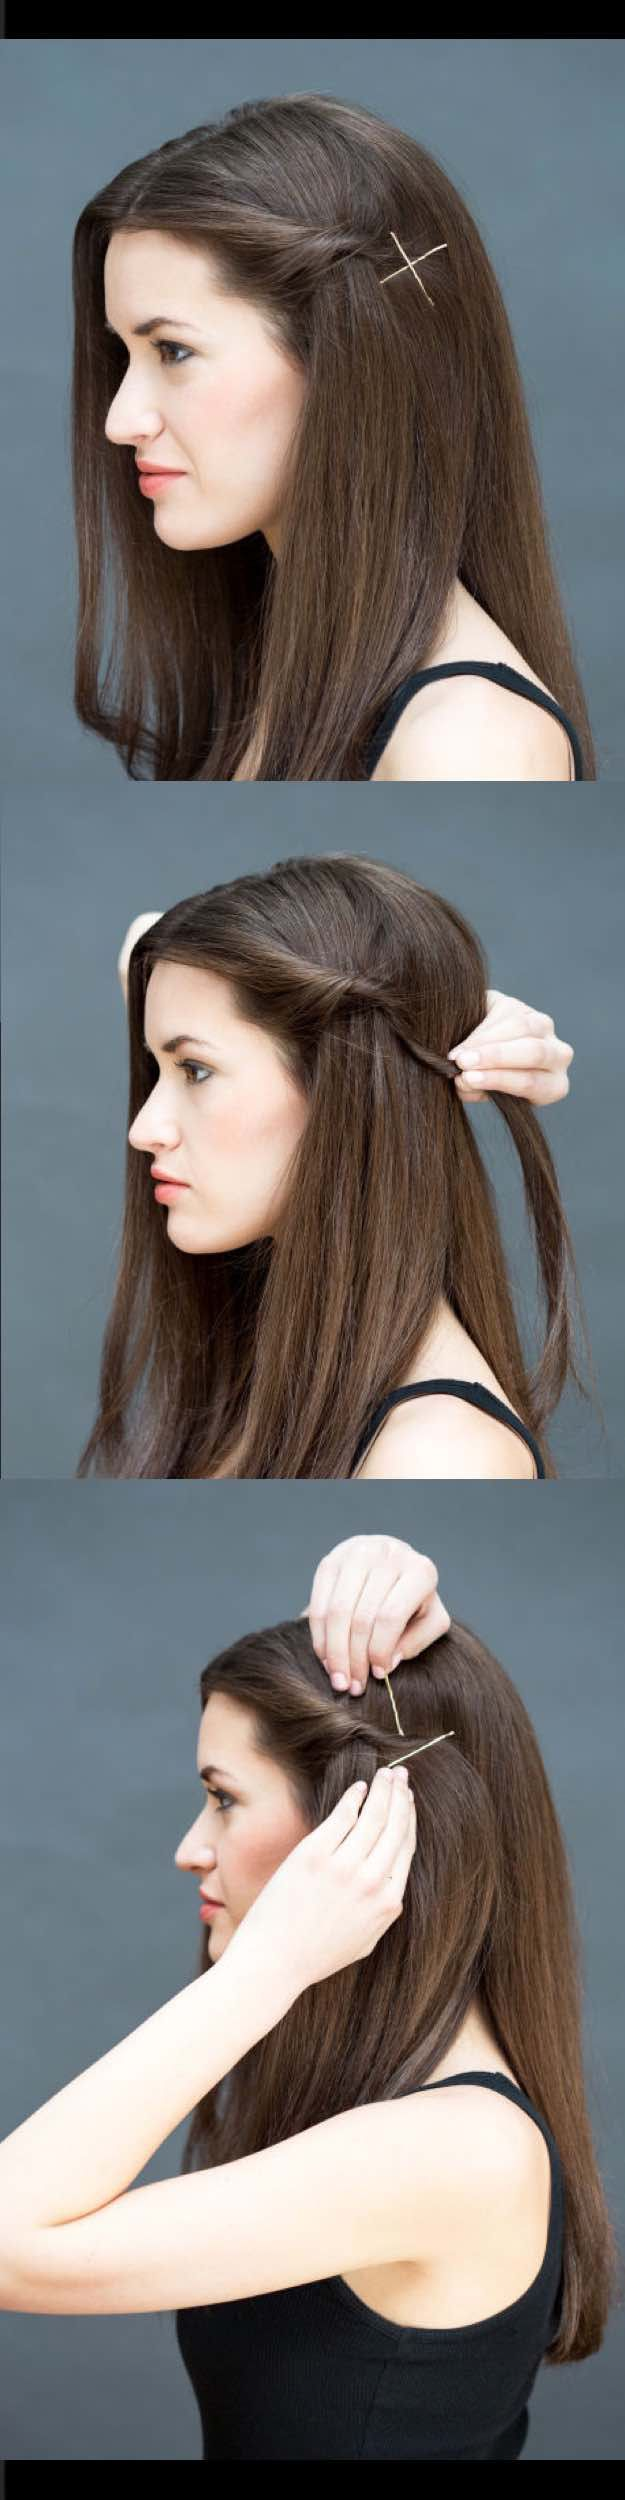 33 Quick and Easy Hairstyles for Straight Hair   Braids ...